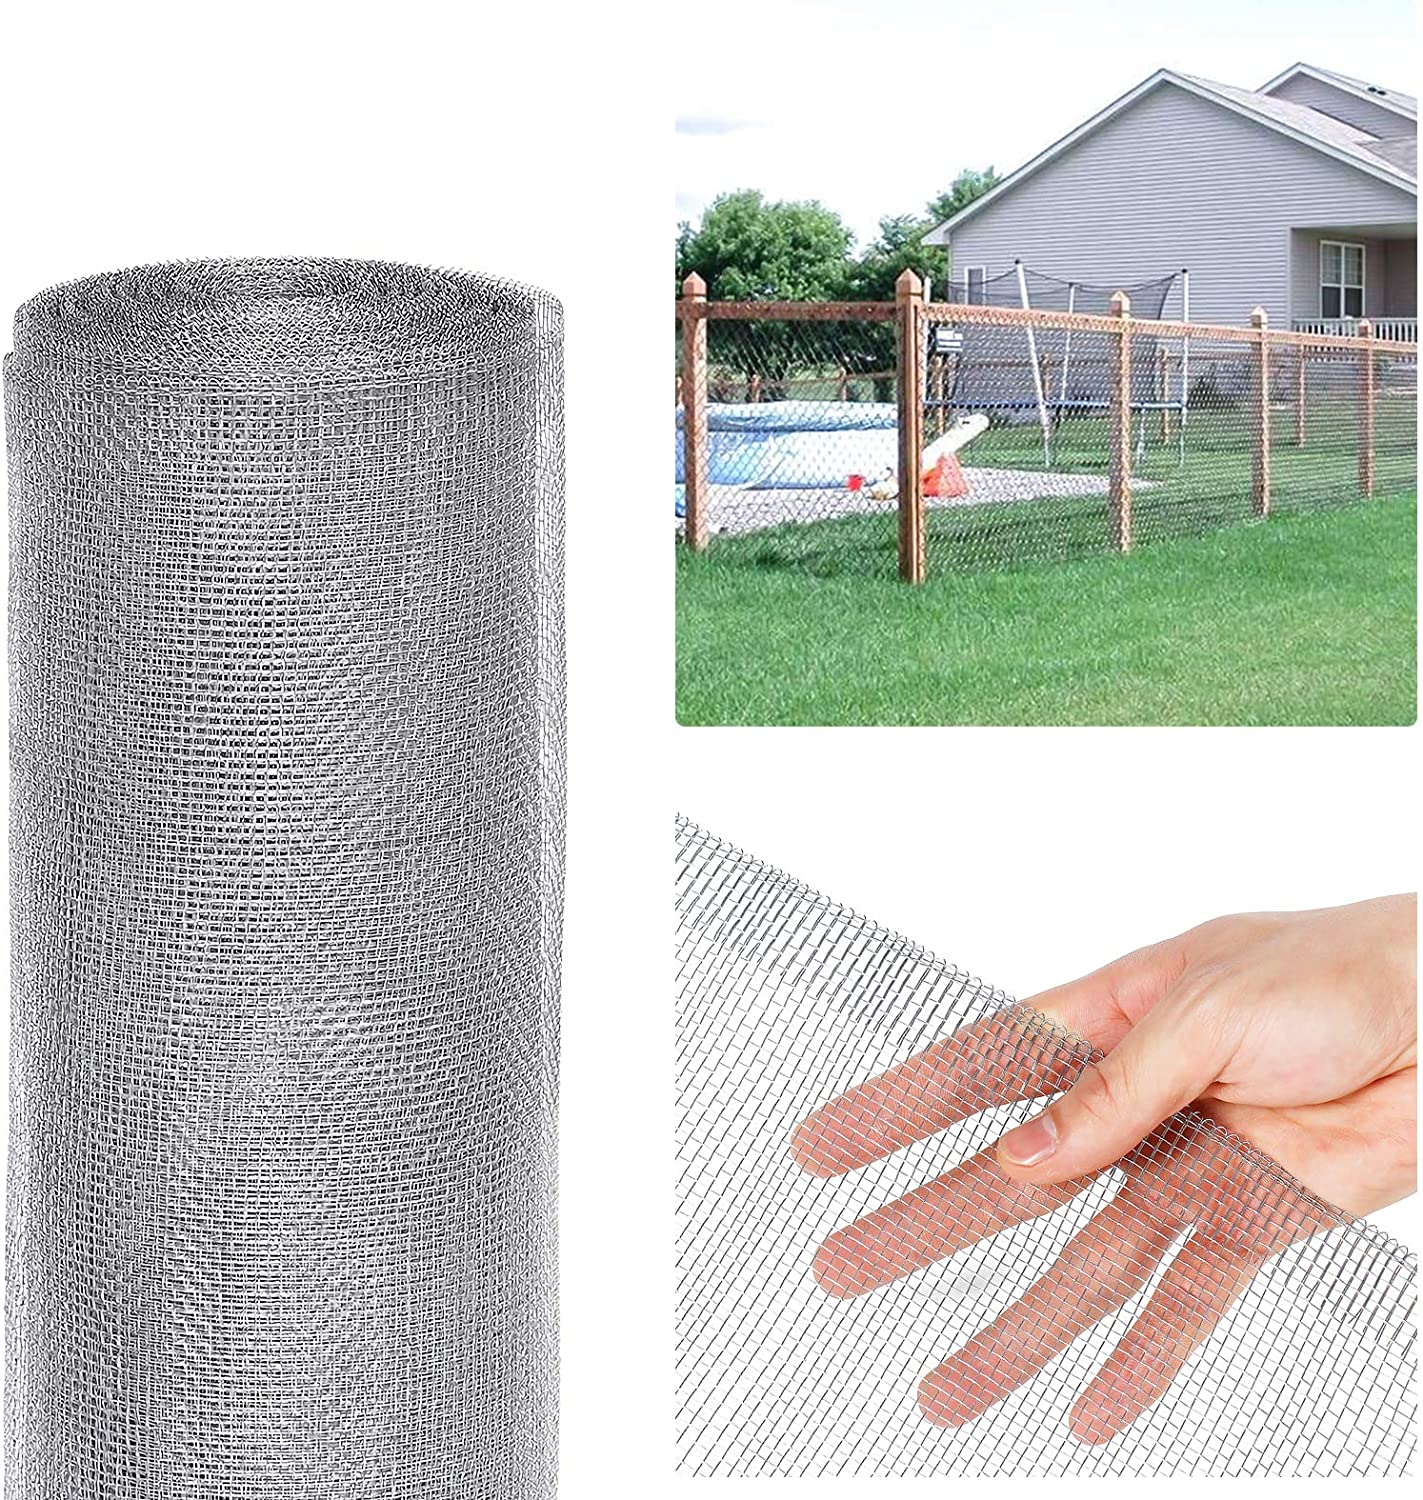 Tooca Hardware Cloth 1/8inch Chicken Wire Mesh, 36in x 50ft, 27 Gauge Hot-Dipped Galvanized Material, Fence Wire Mesh for Chicken Coop/Run/Cage/Pen/Vegetables Garden and Home Improvement Projects